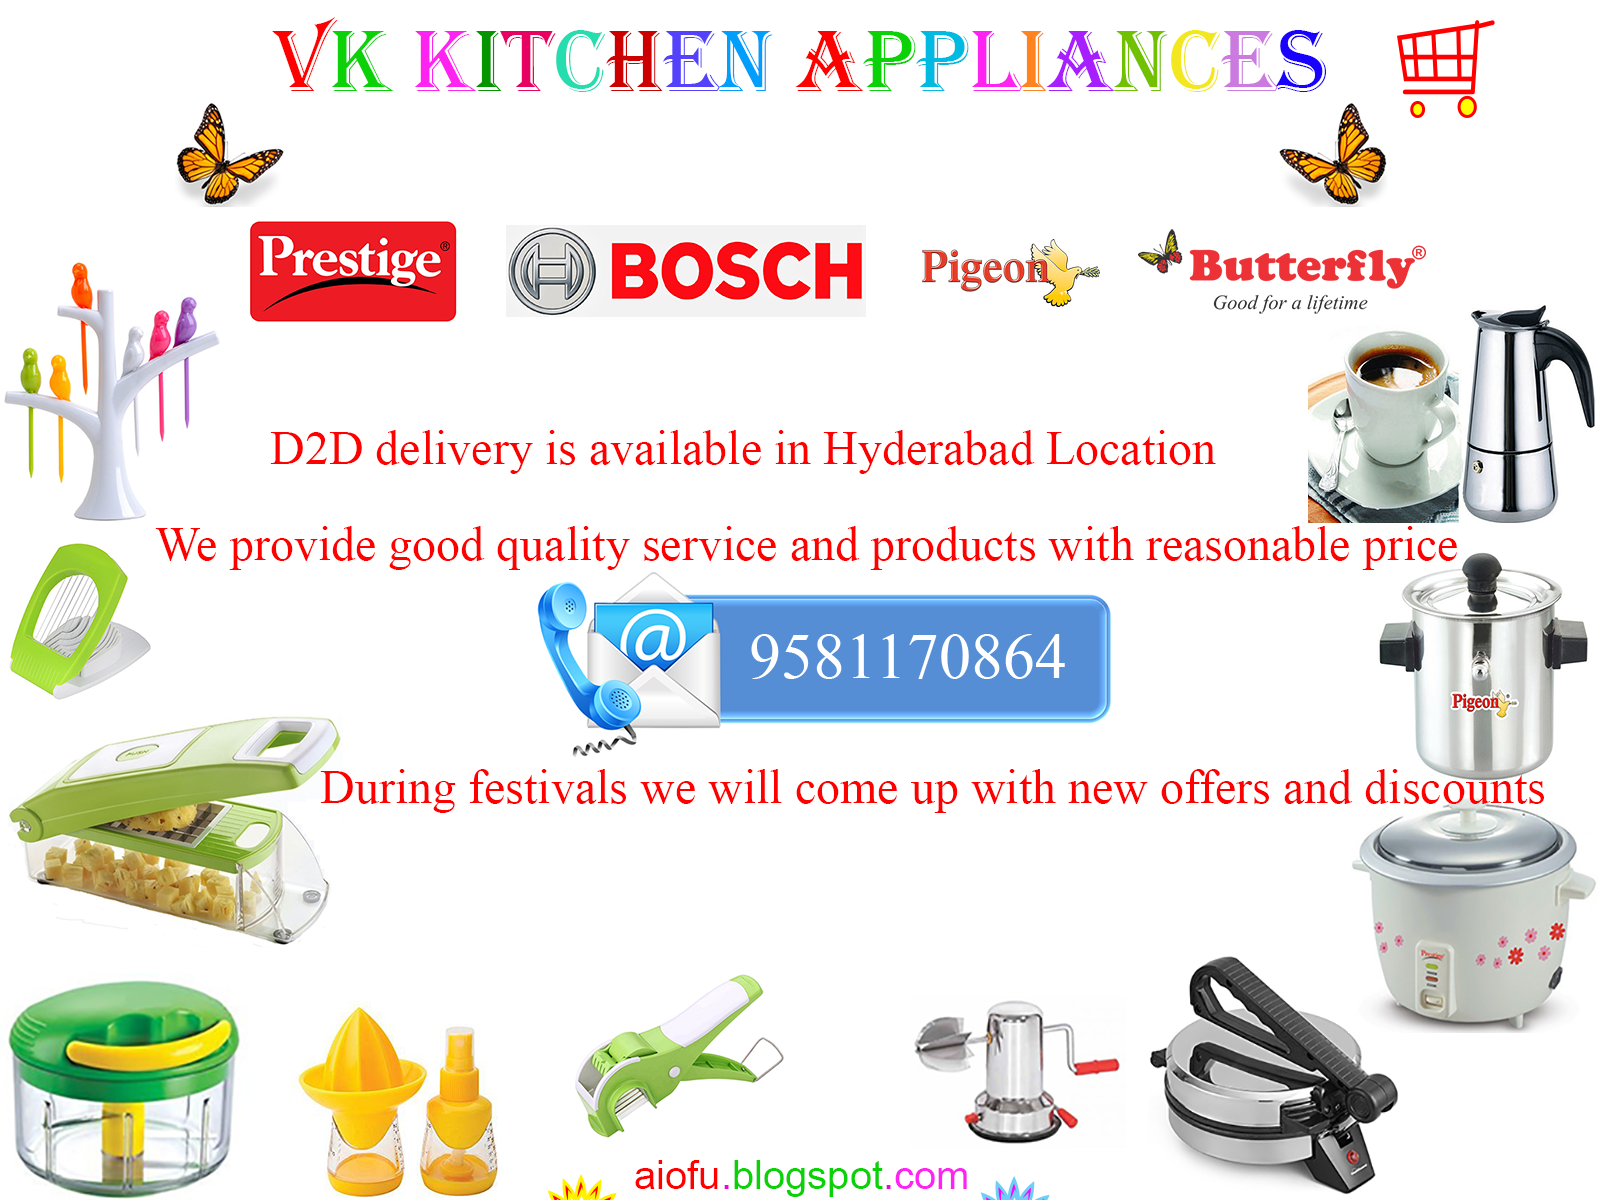 Uncategorized Online Shopping Sites For Kitchen Appliances In India vk kitchen appliances aiofu buy online at best prices in india latest appliances